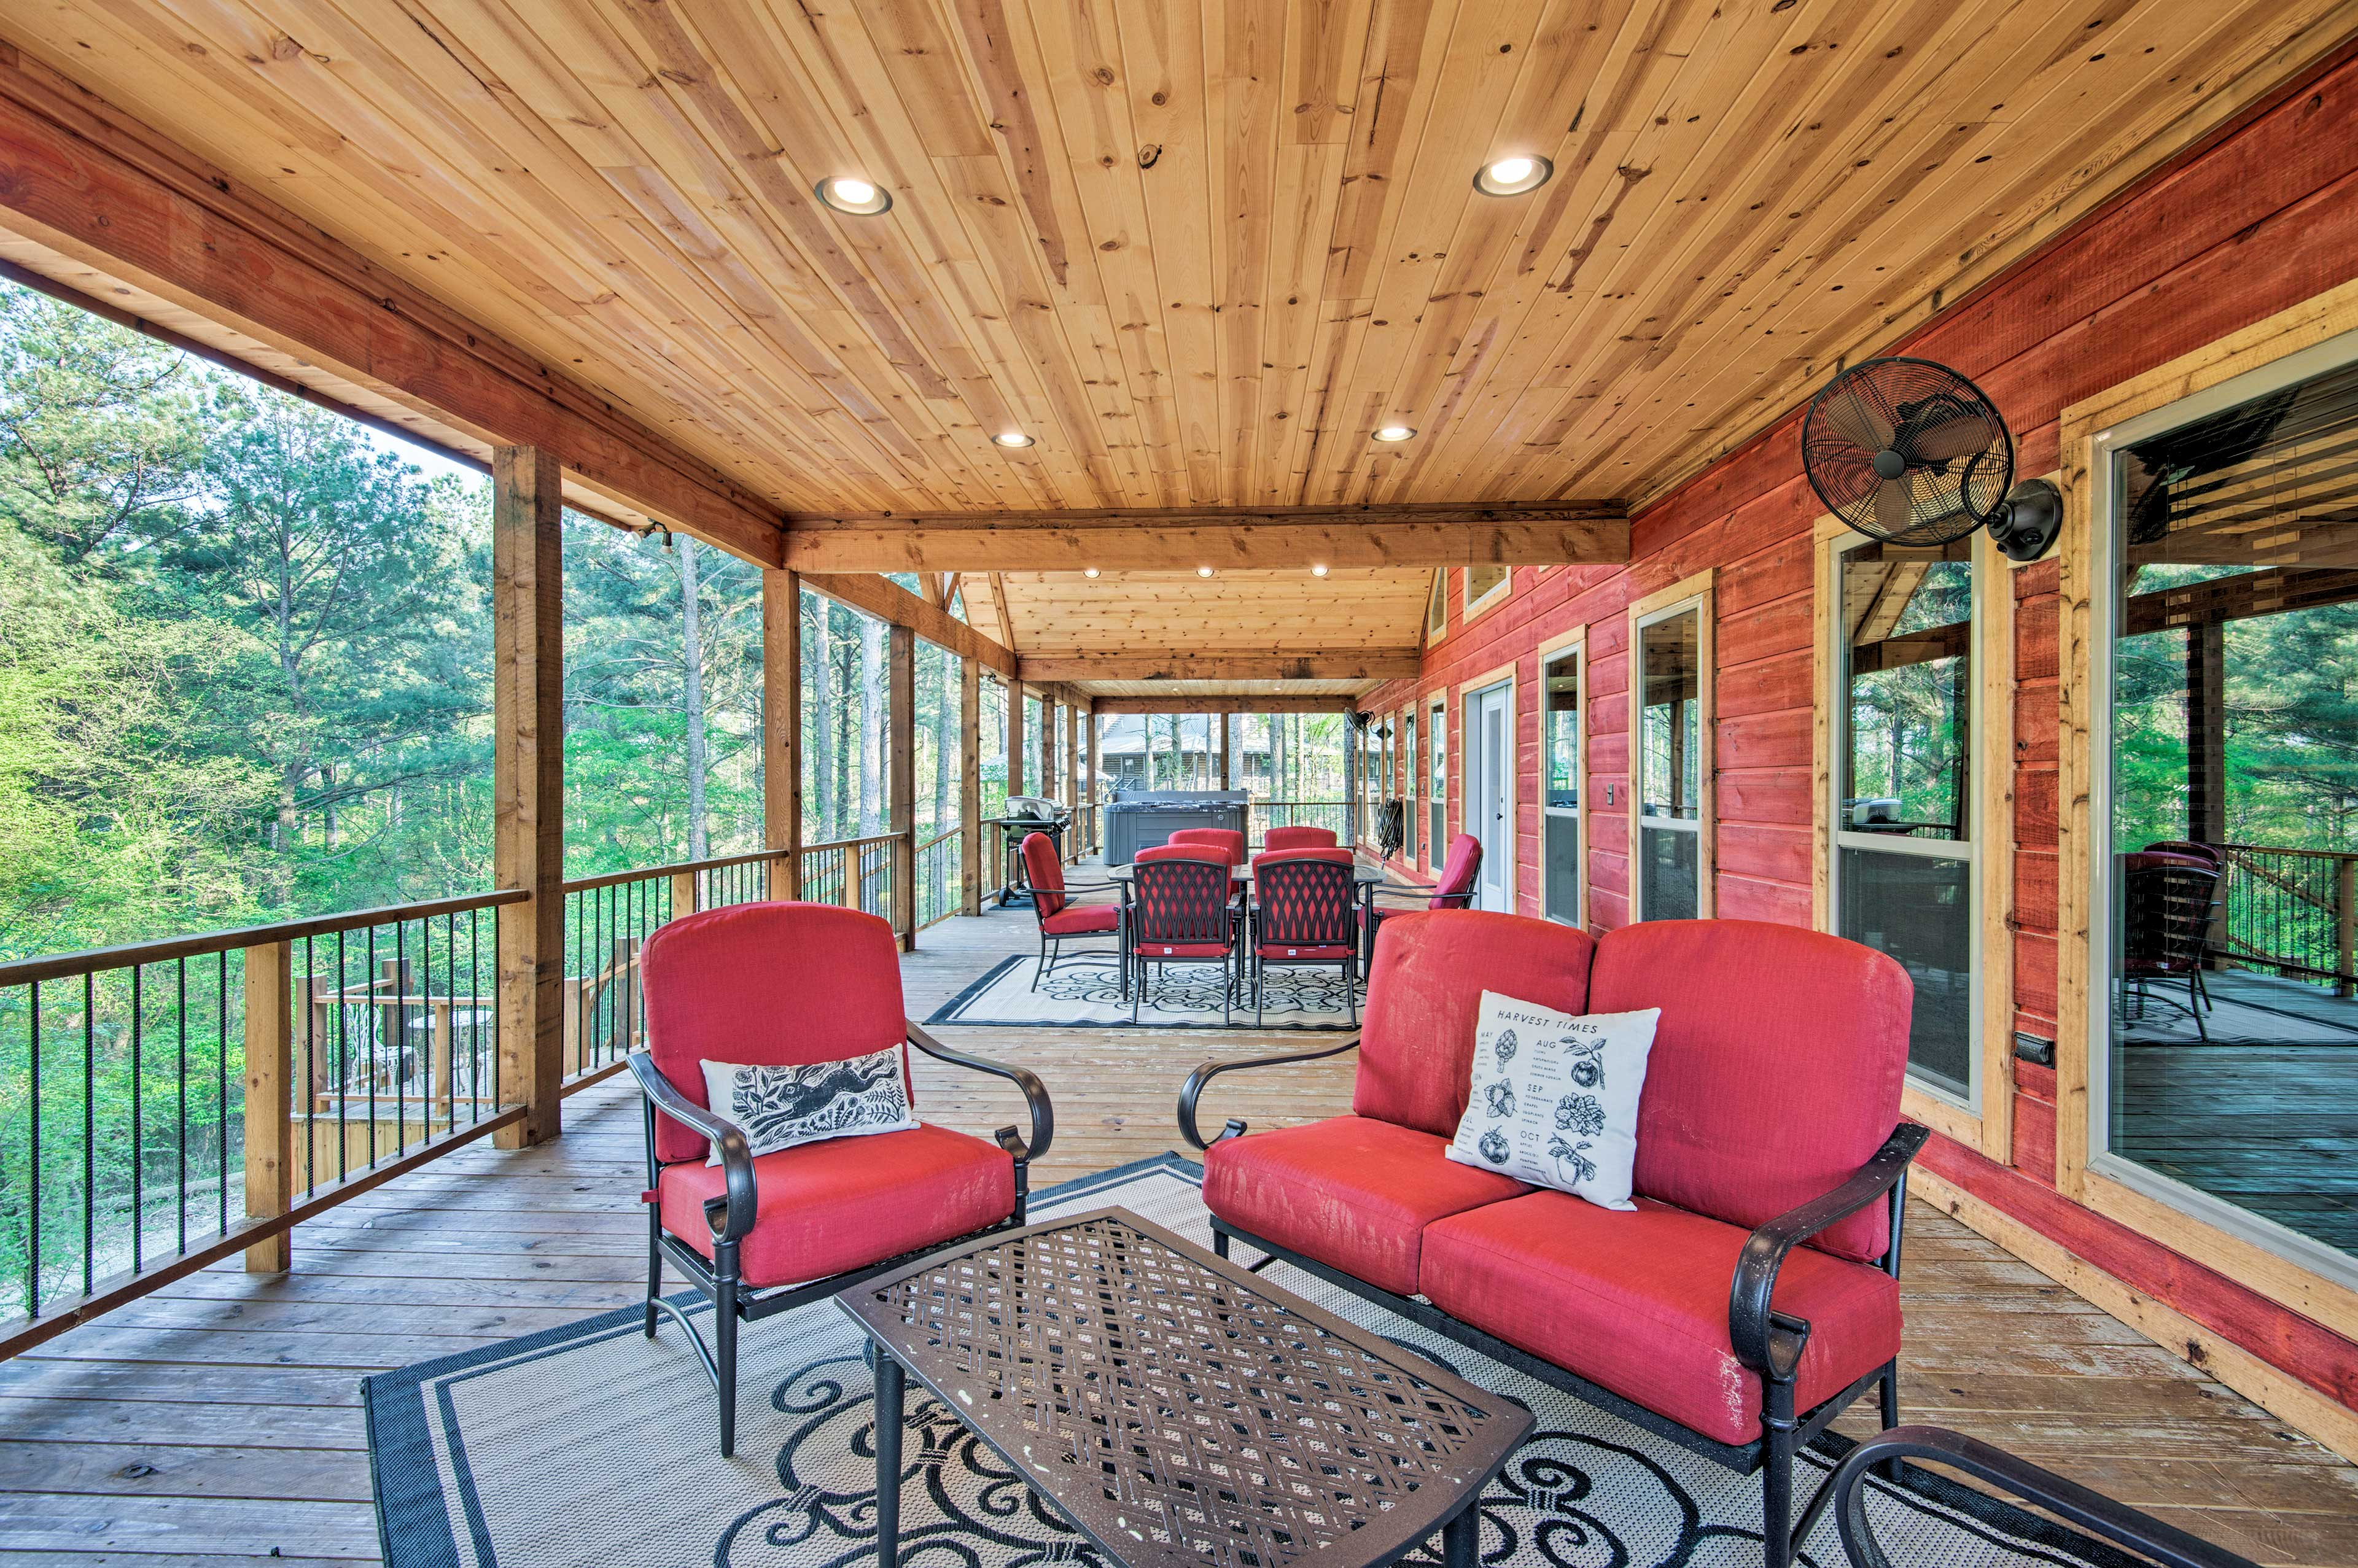 You'll be delighted to lounge on the wraparound deck after outdoor activities.